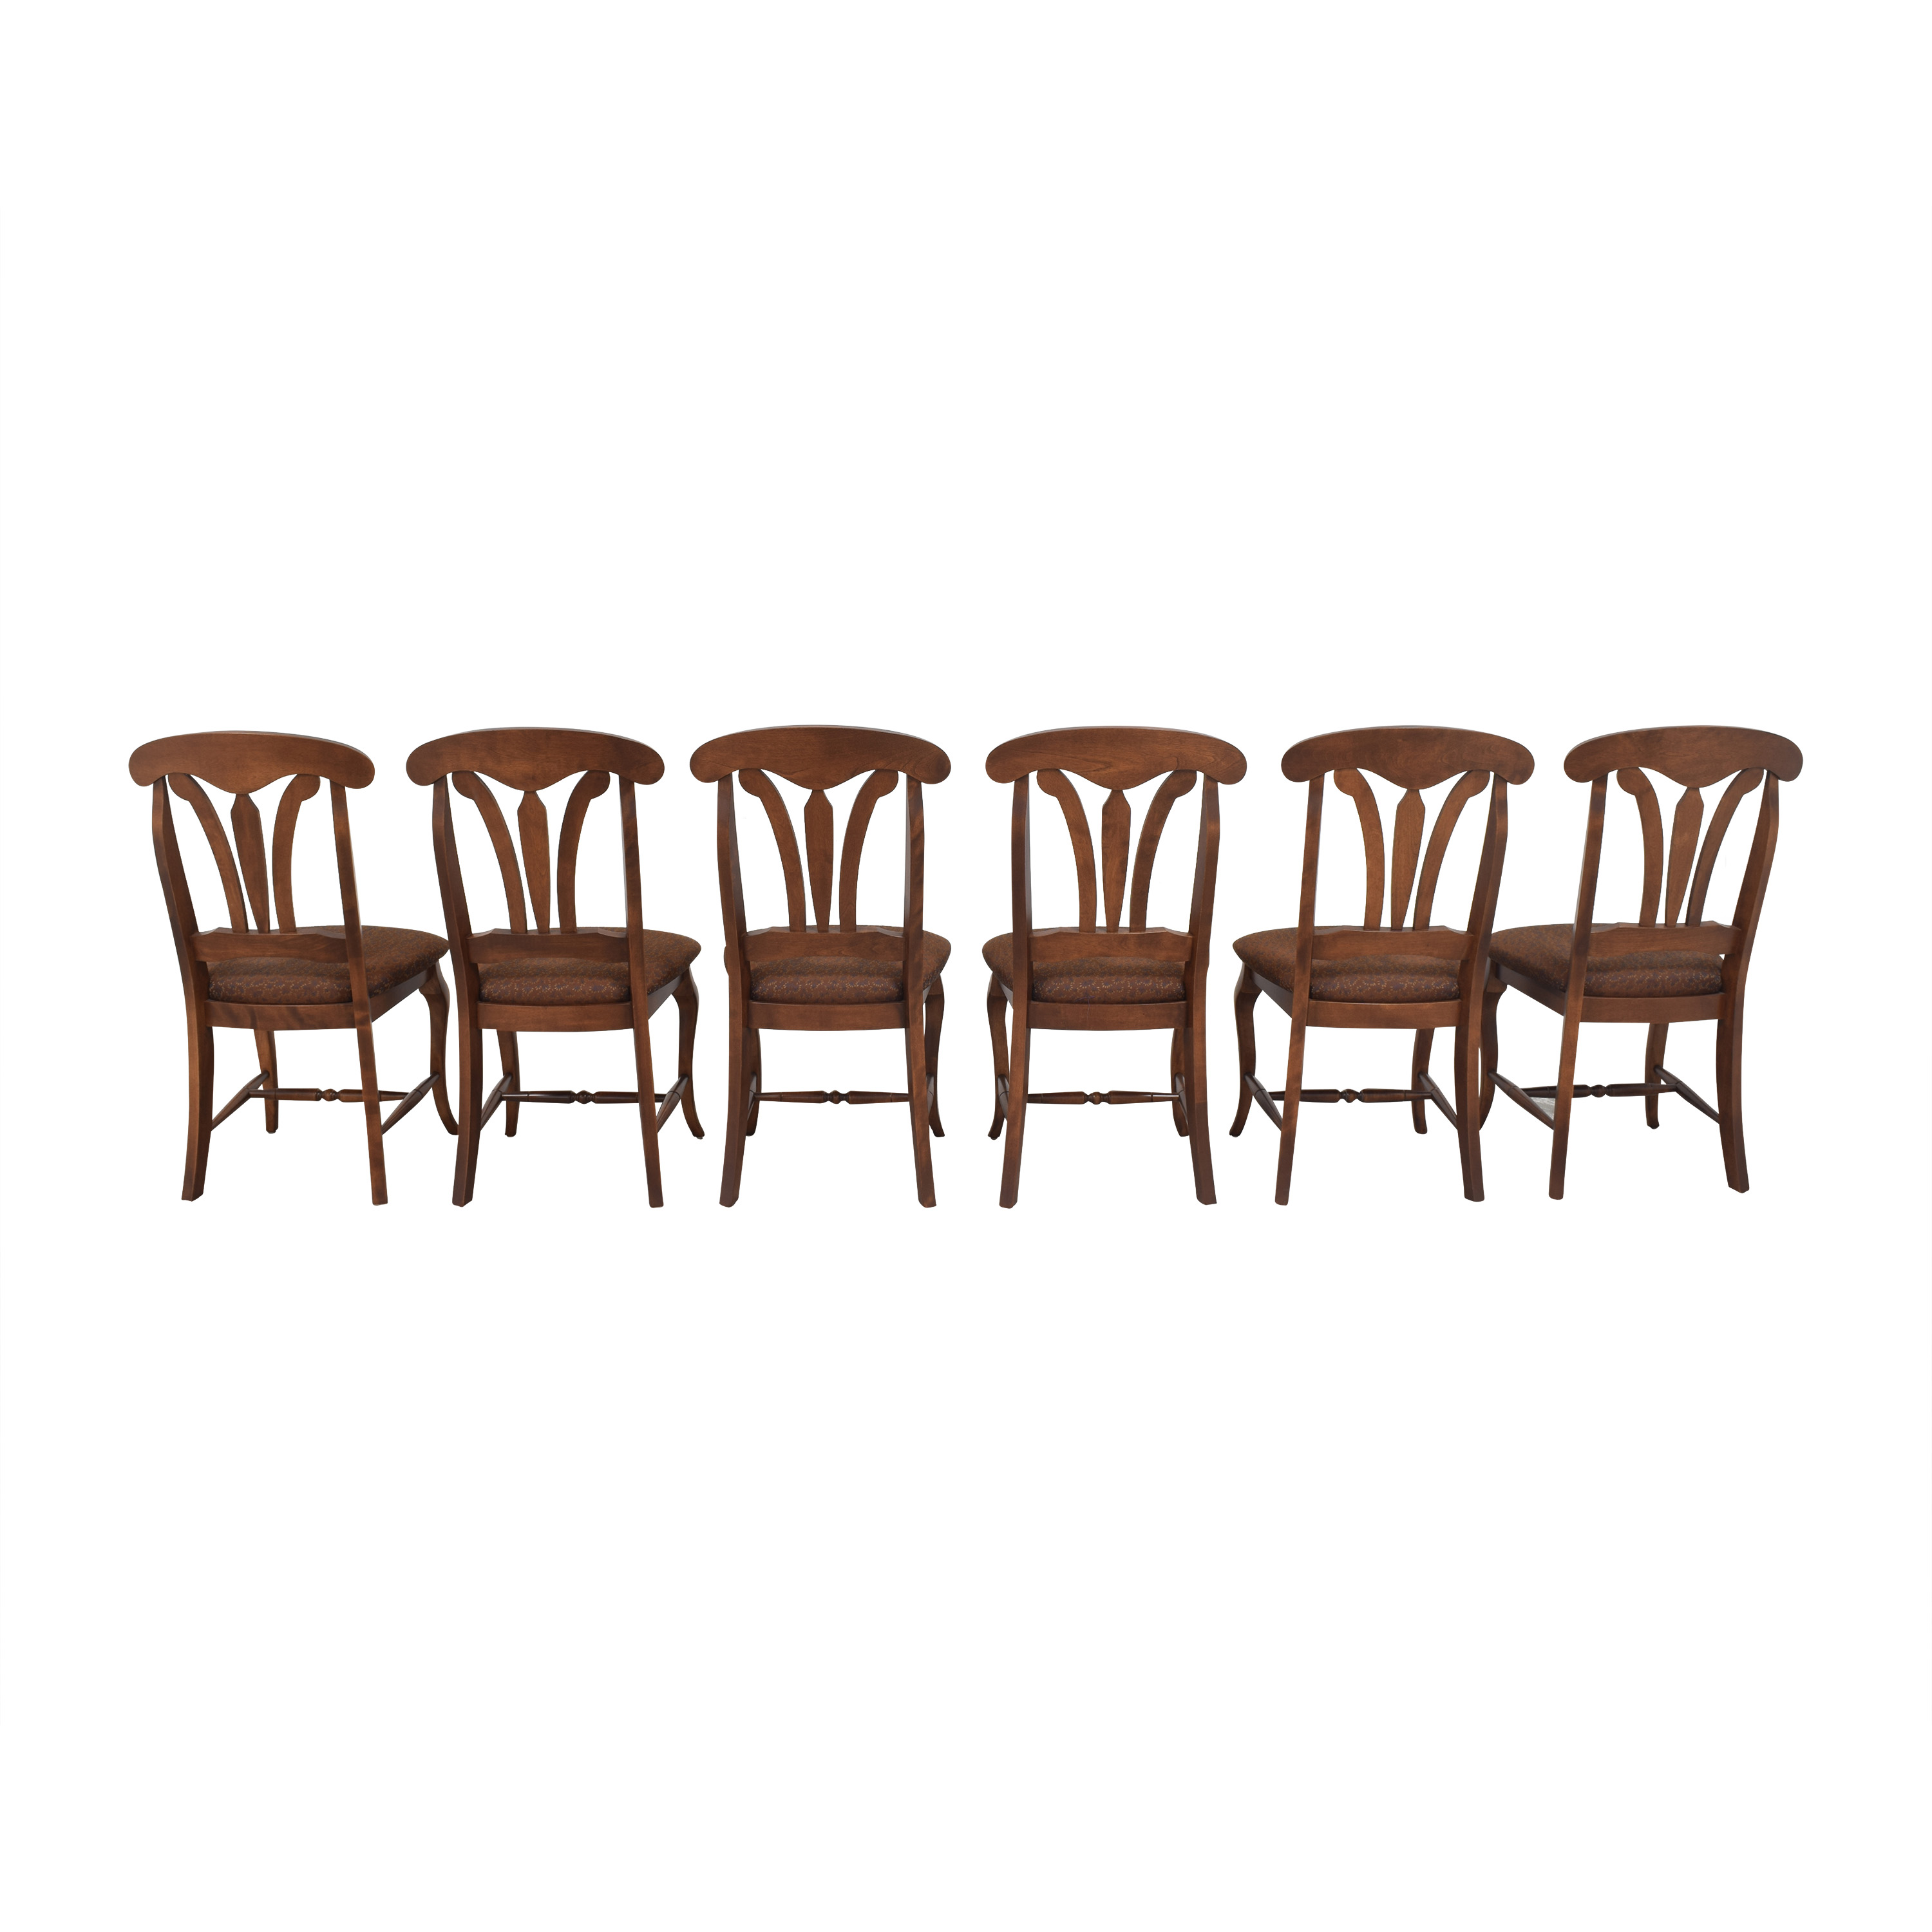 Canadel Canadel Upholstered Dining Chairs price